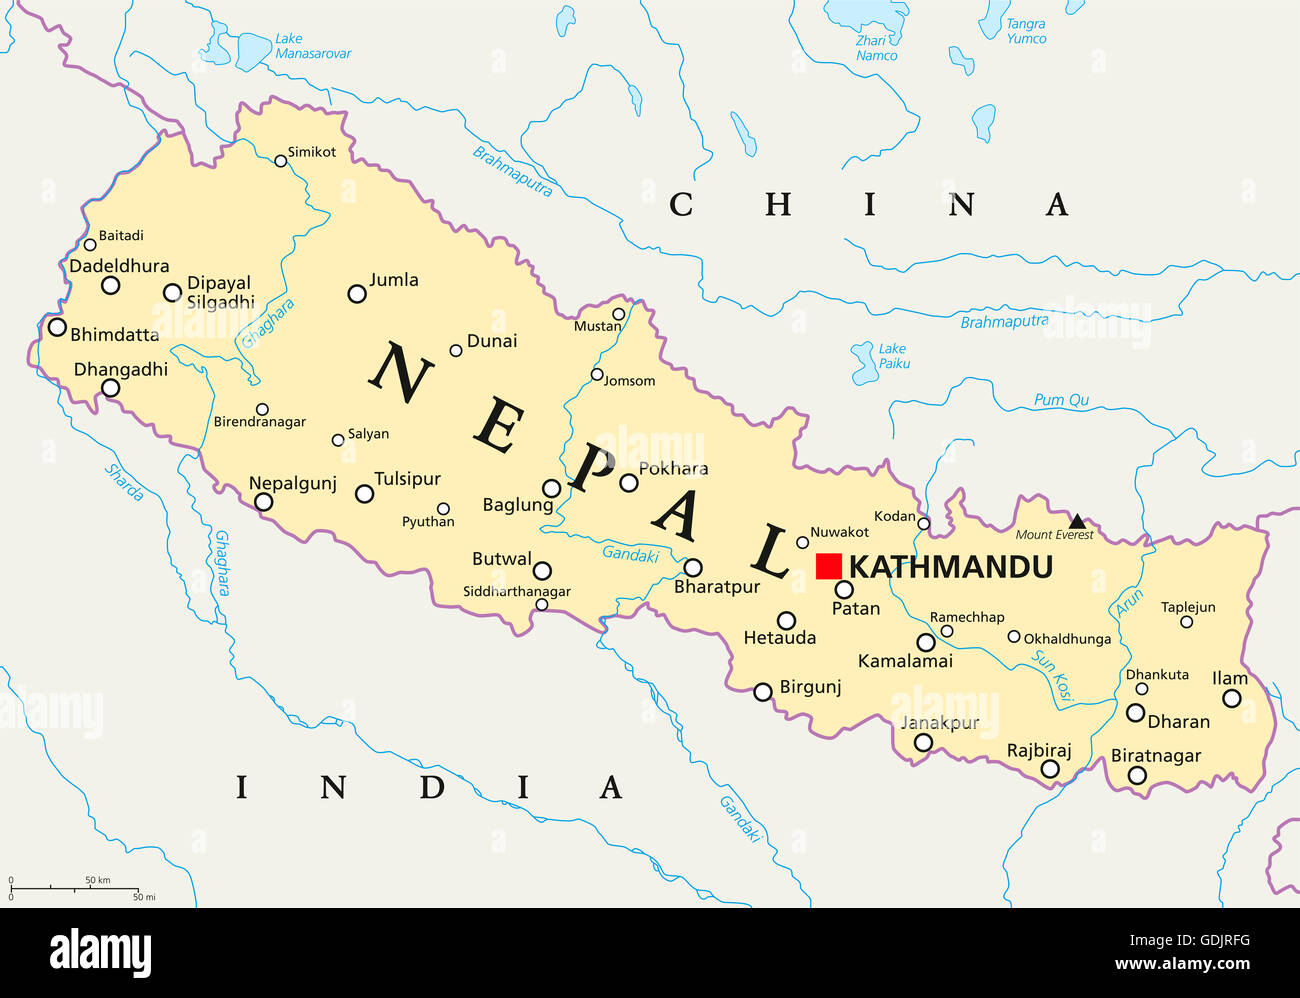 Nepal Political Map With Capital Kathmandu National Borders - Map of nepal